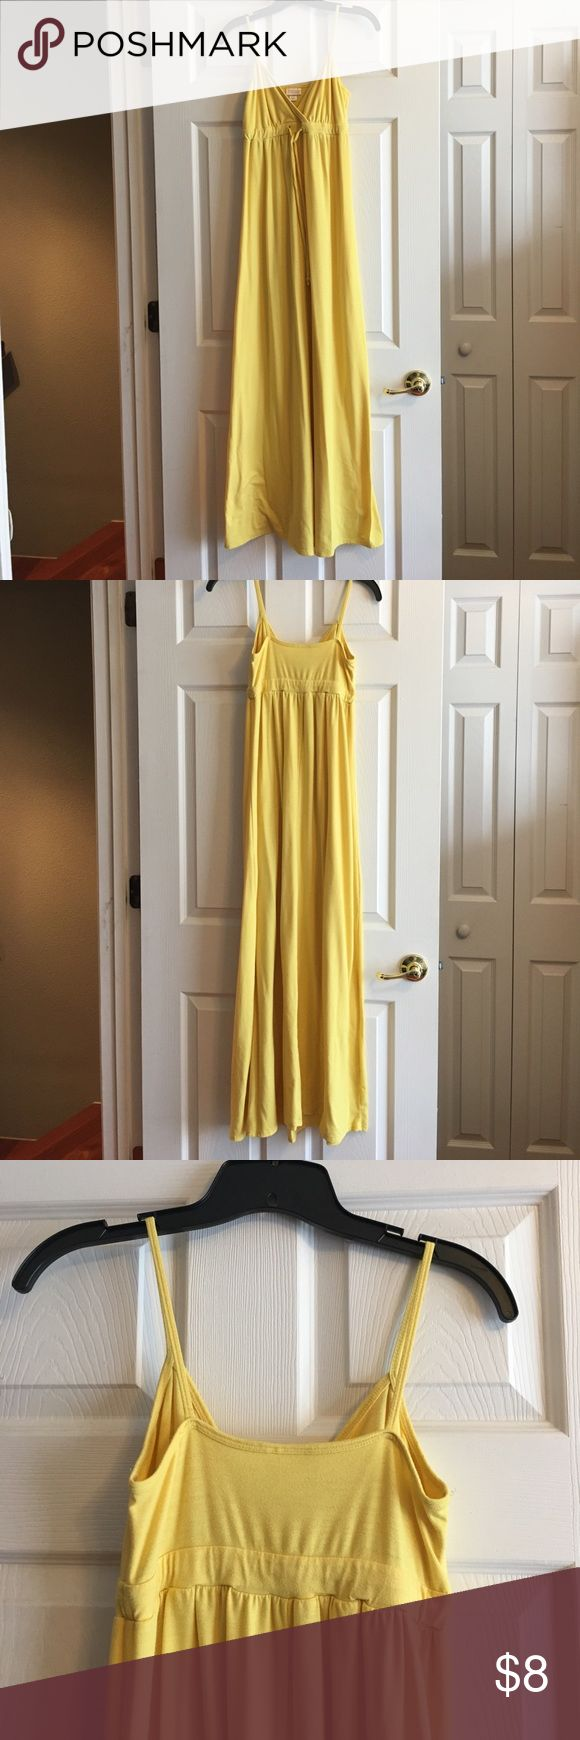 Mossimo Yellow Maxi Dress Yellow maxi. Floor length. Ties at high waist (empire waist). Spaghetti straps. Size small. Mossimo Supply Co Dresses Maxi